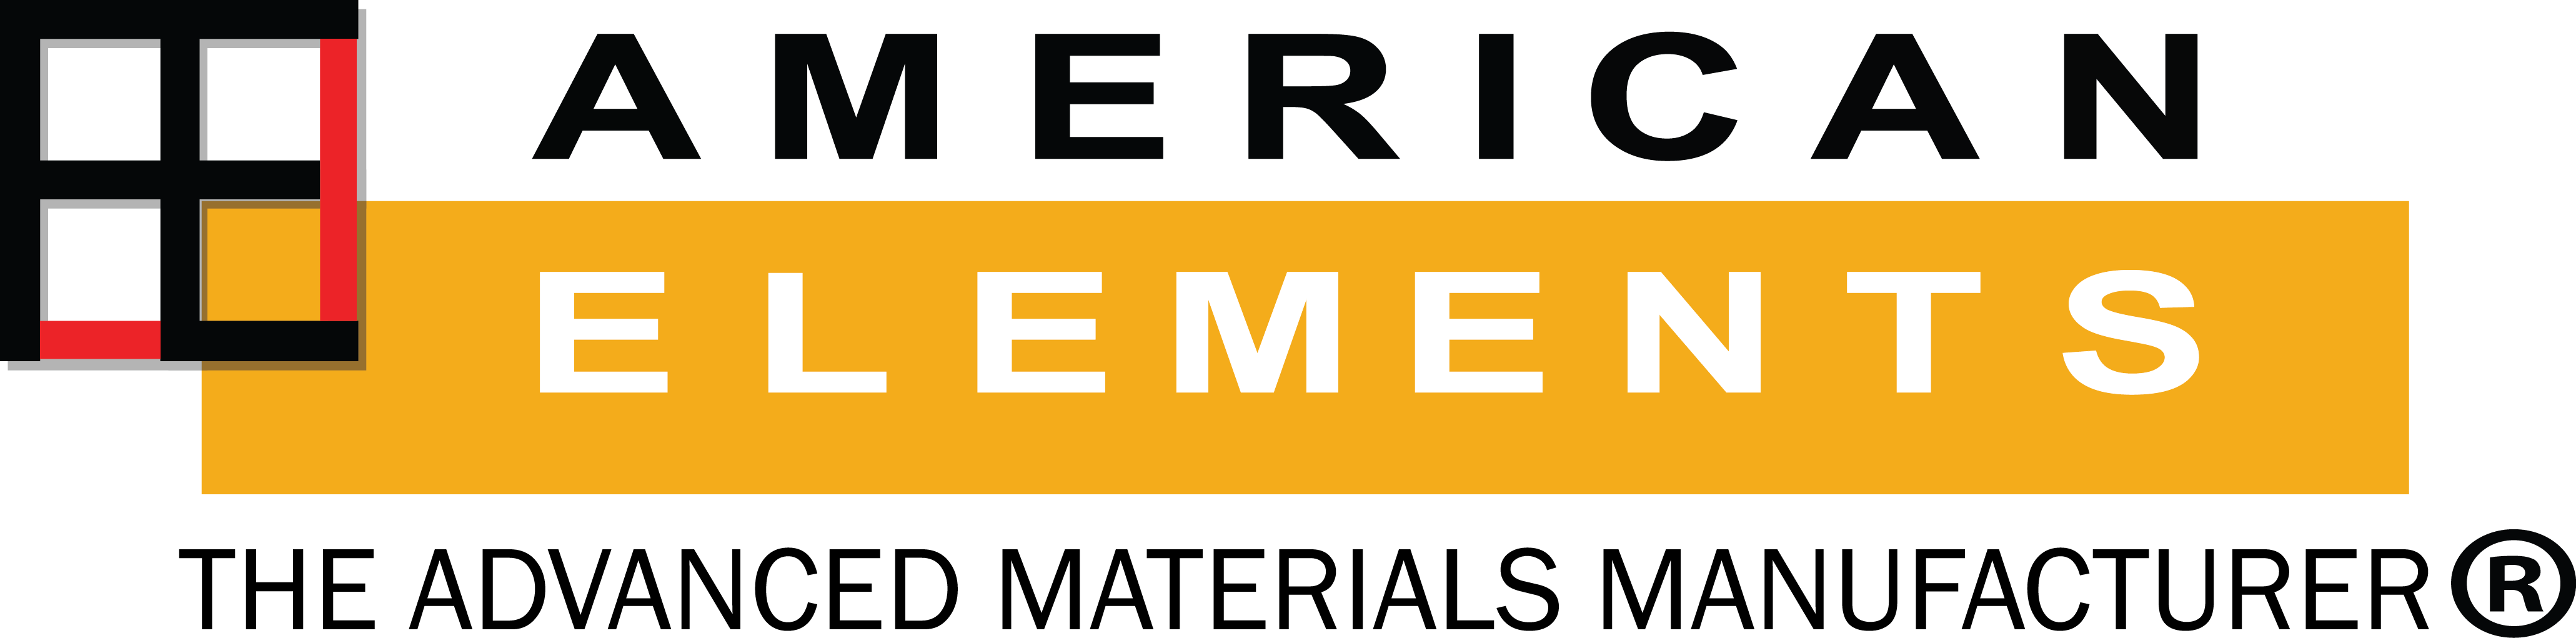 American Elements, global manufacturer of advanced materials for process engineering in automotive, aerospace, energy, defense, biotech industries & additive manufacturing